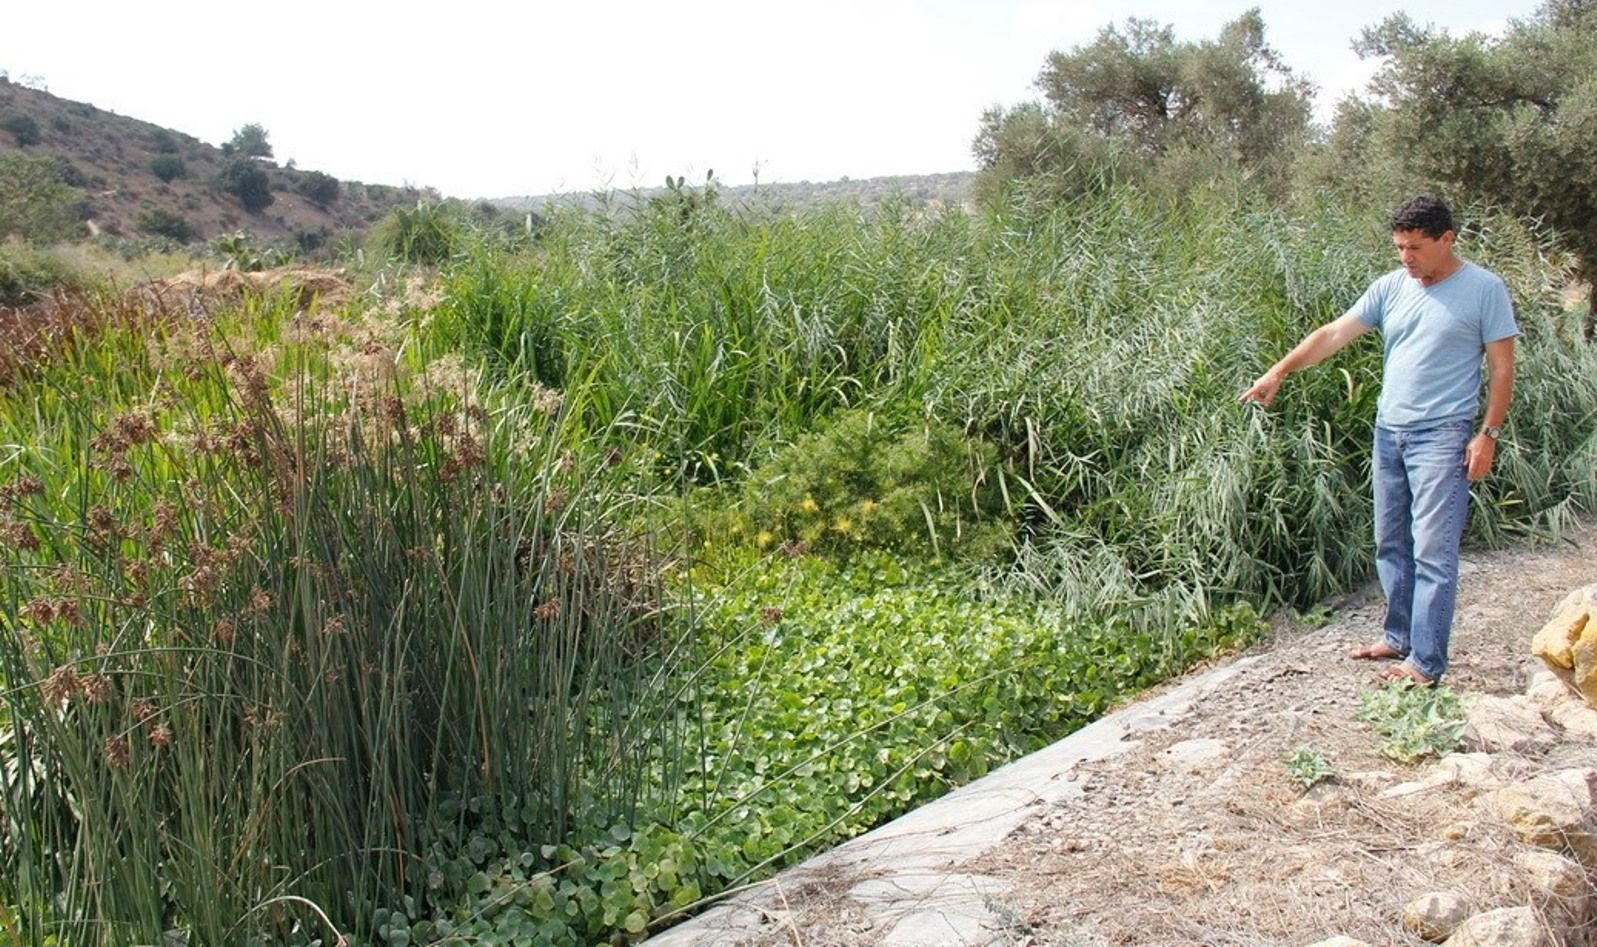 How To Purify Wastewater Using Just Plants Israel21c